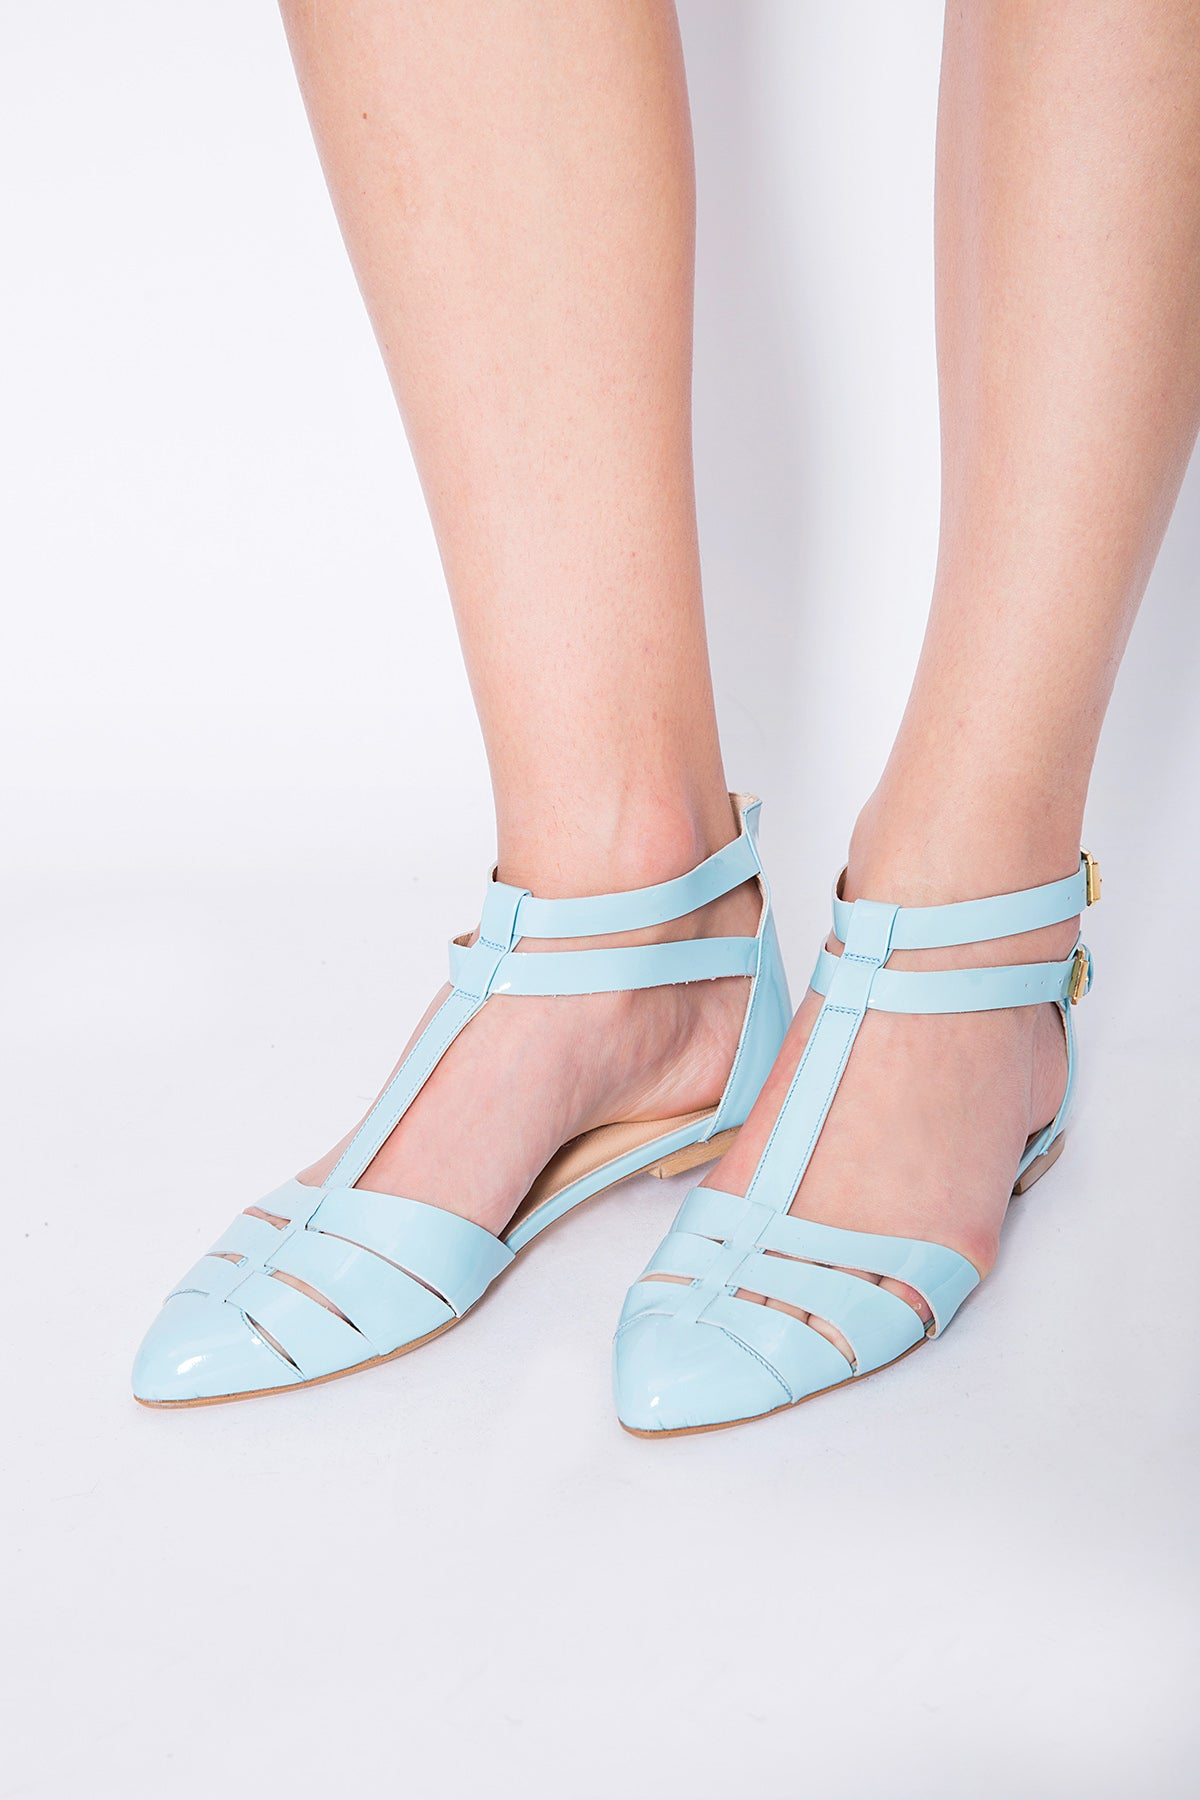 Leather fishbone-patterned sandals